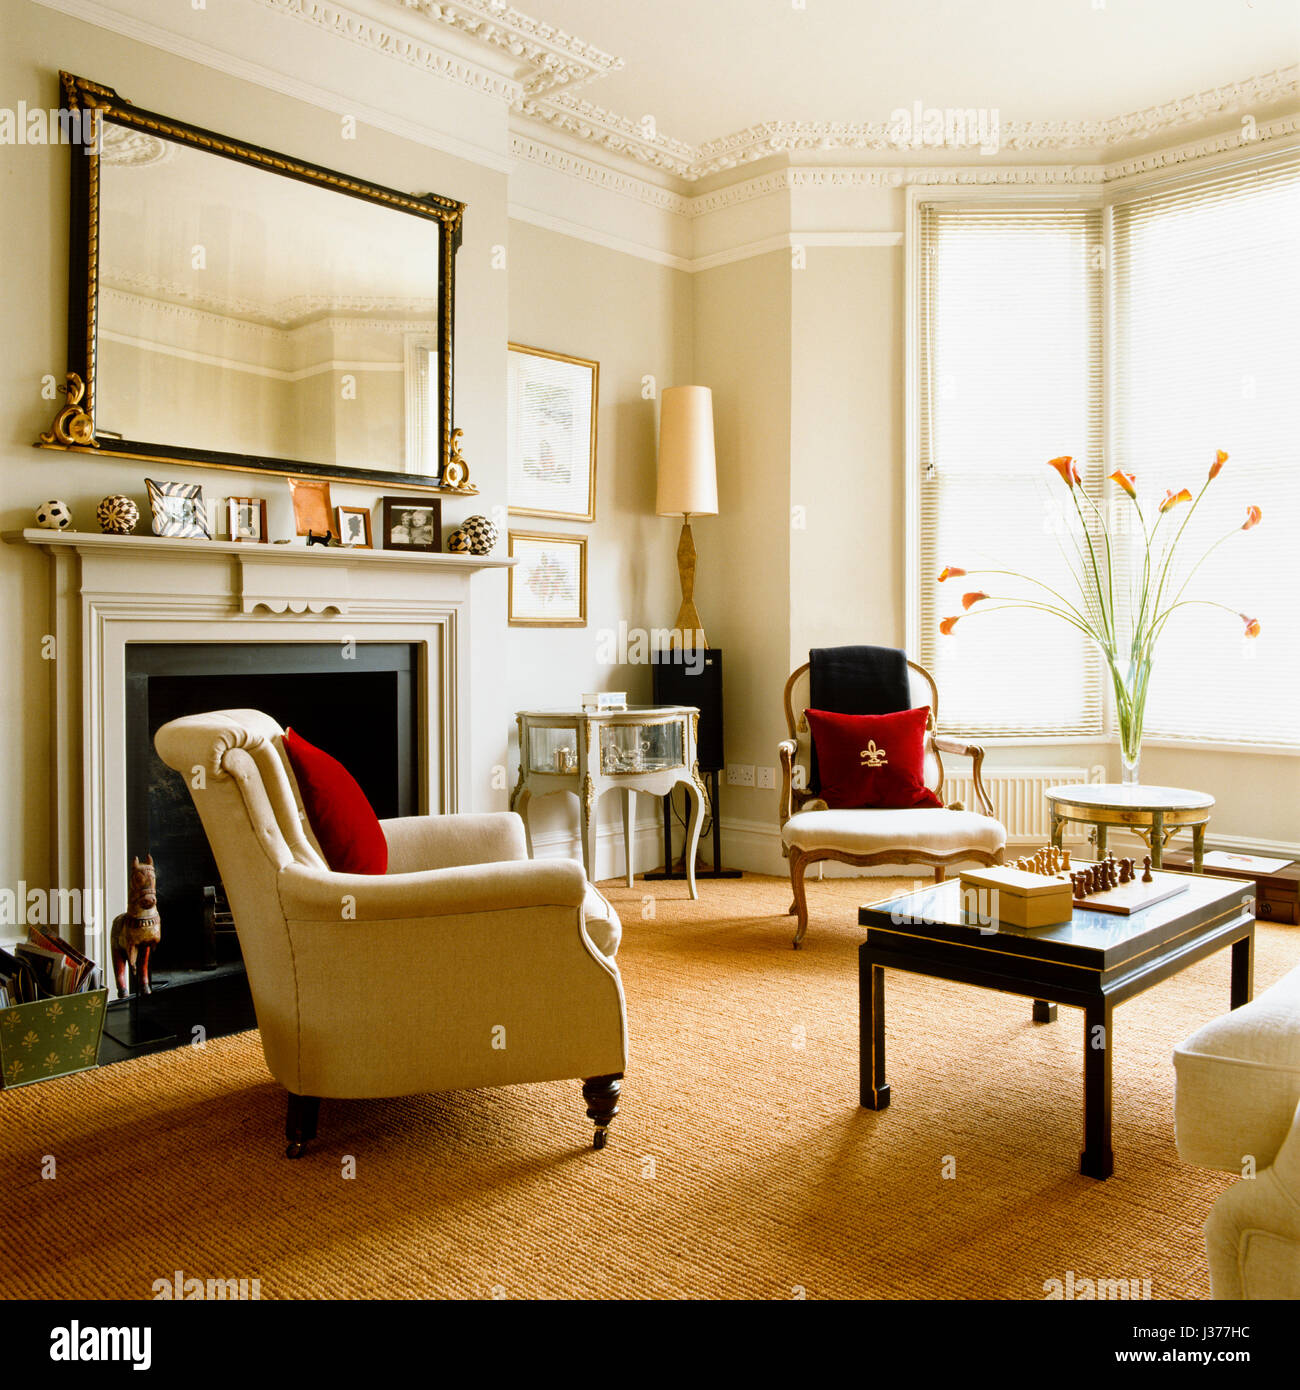 Classic style living room. - Stock Image